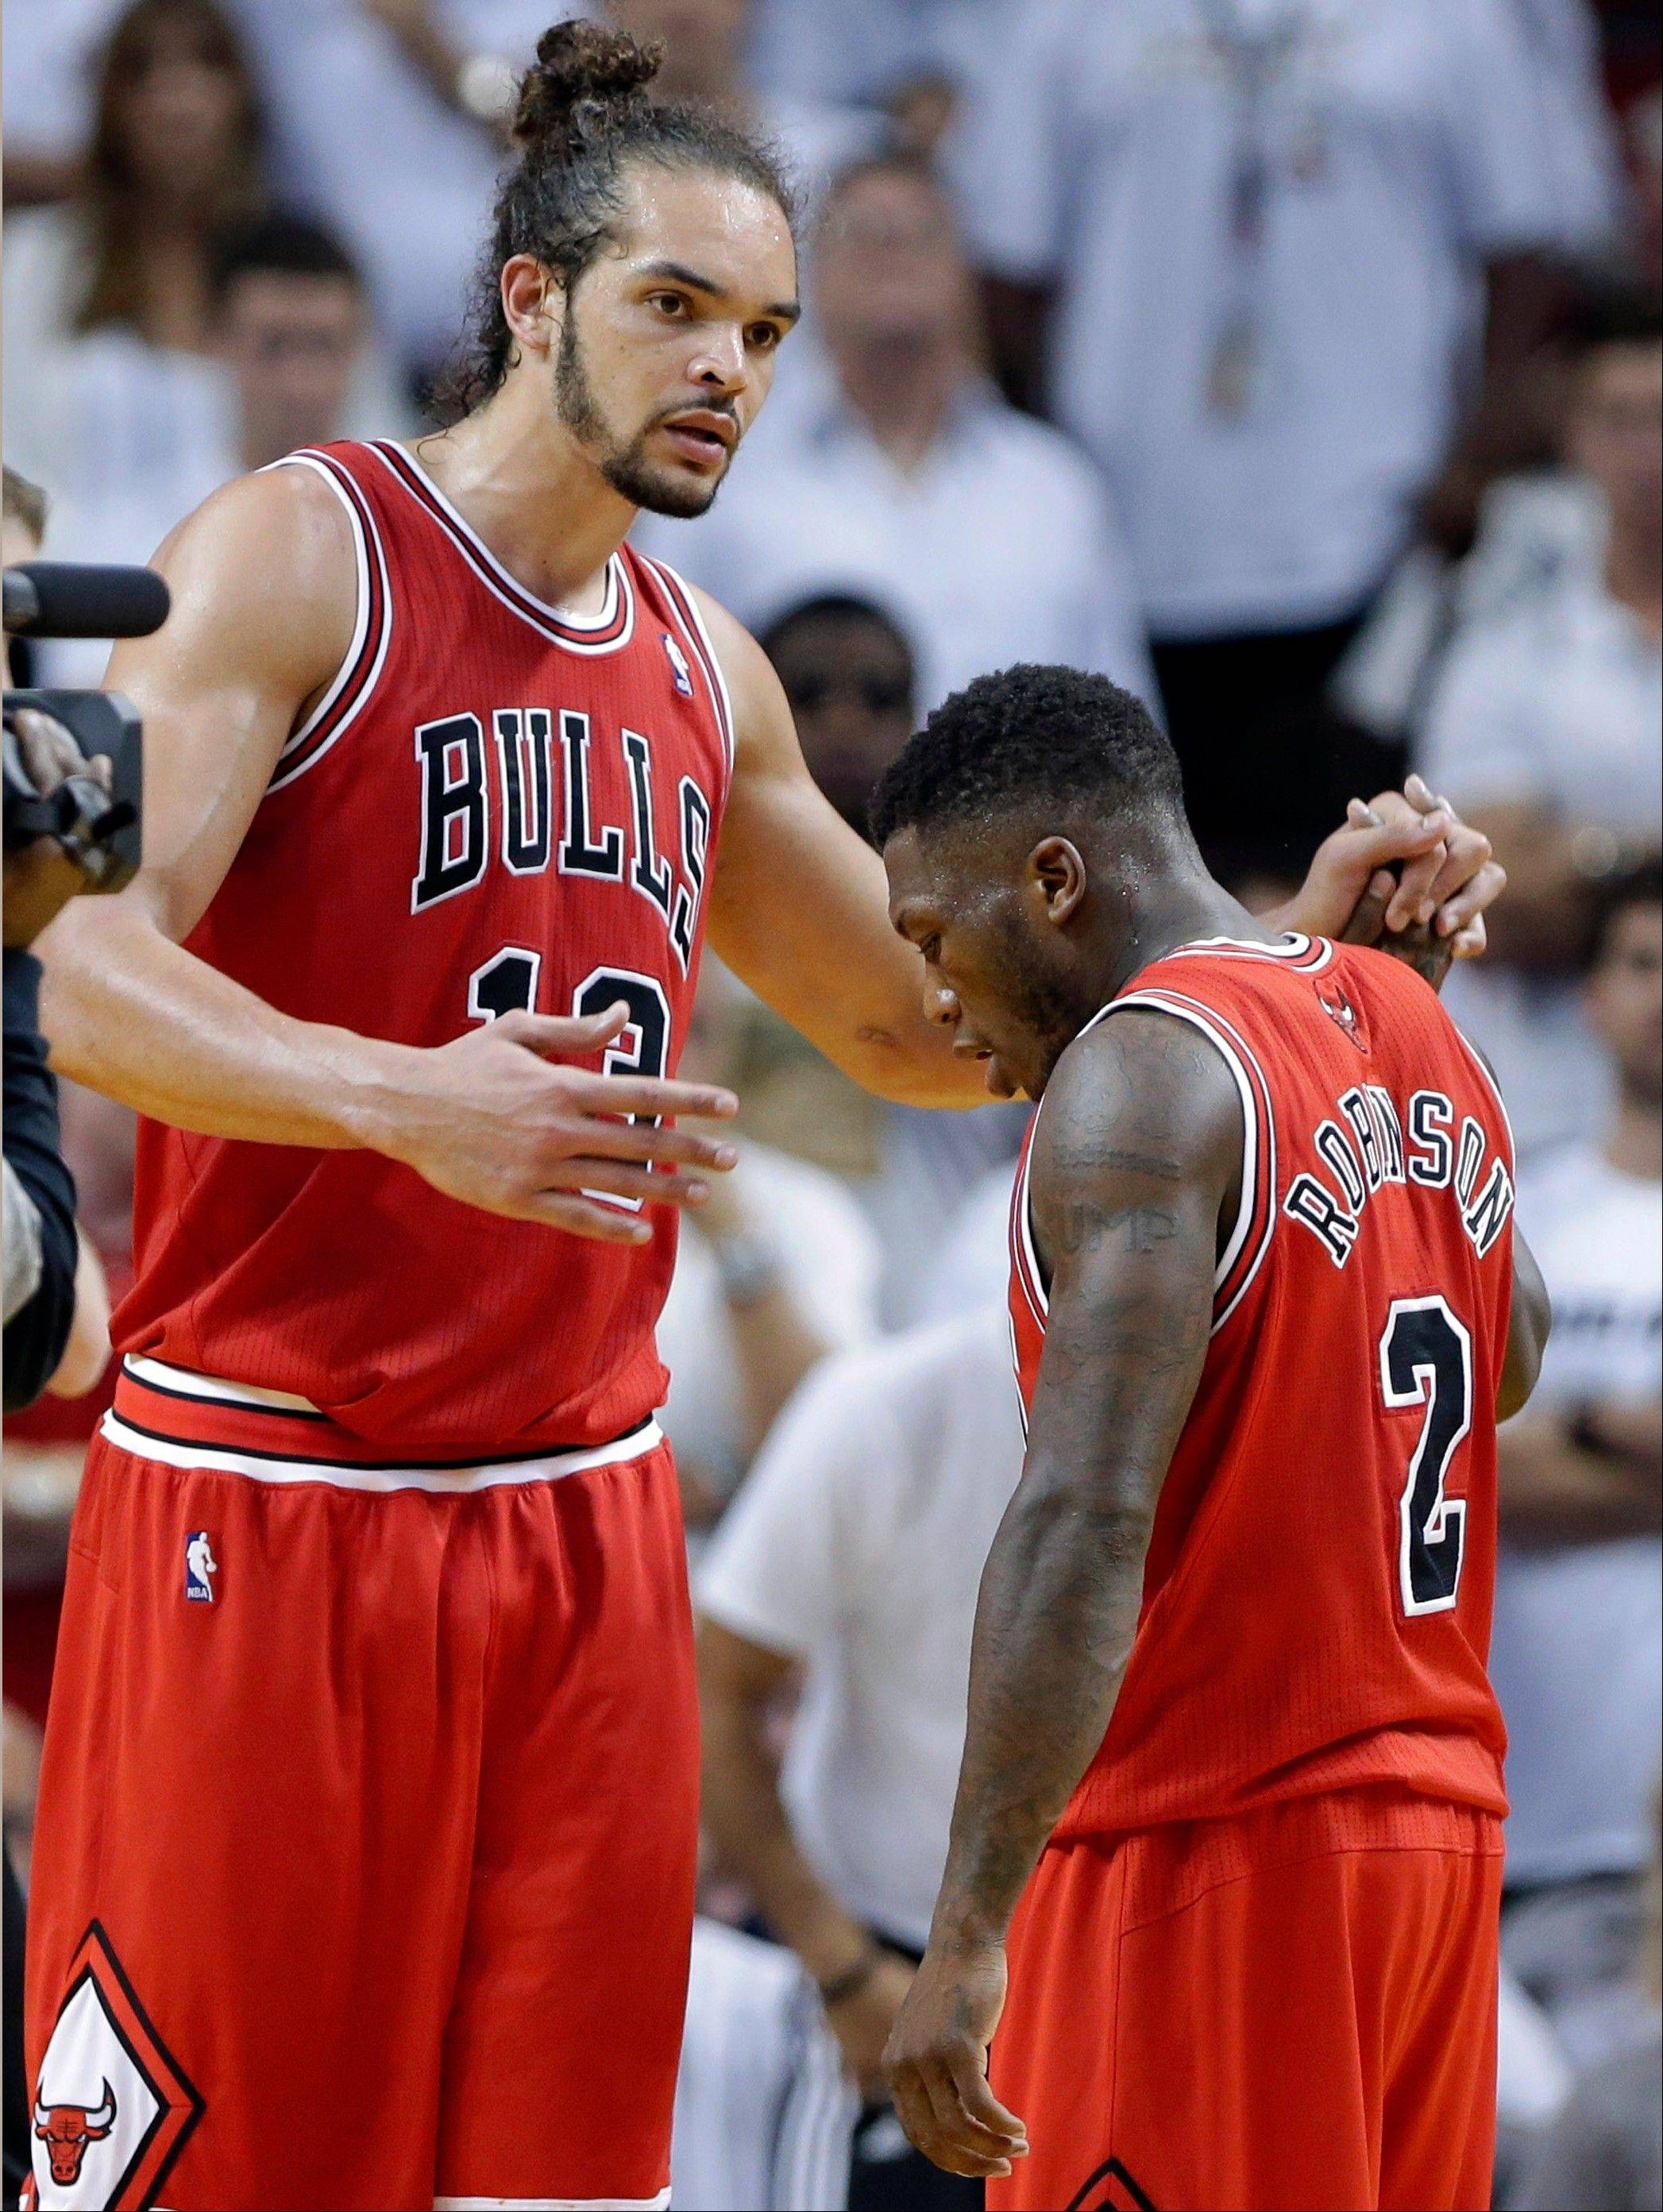 Bulls center Joakim Noah, left, clasps hands with Nate Robinson during Monday's second half.